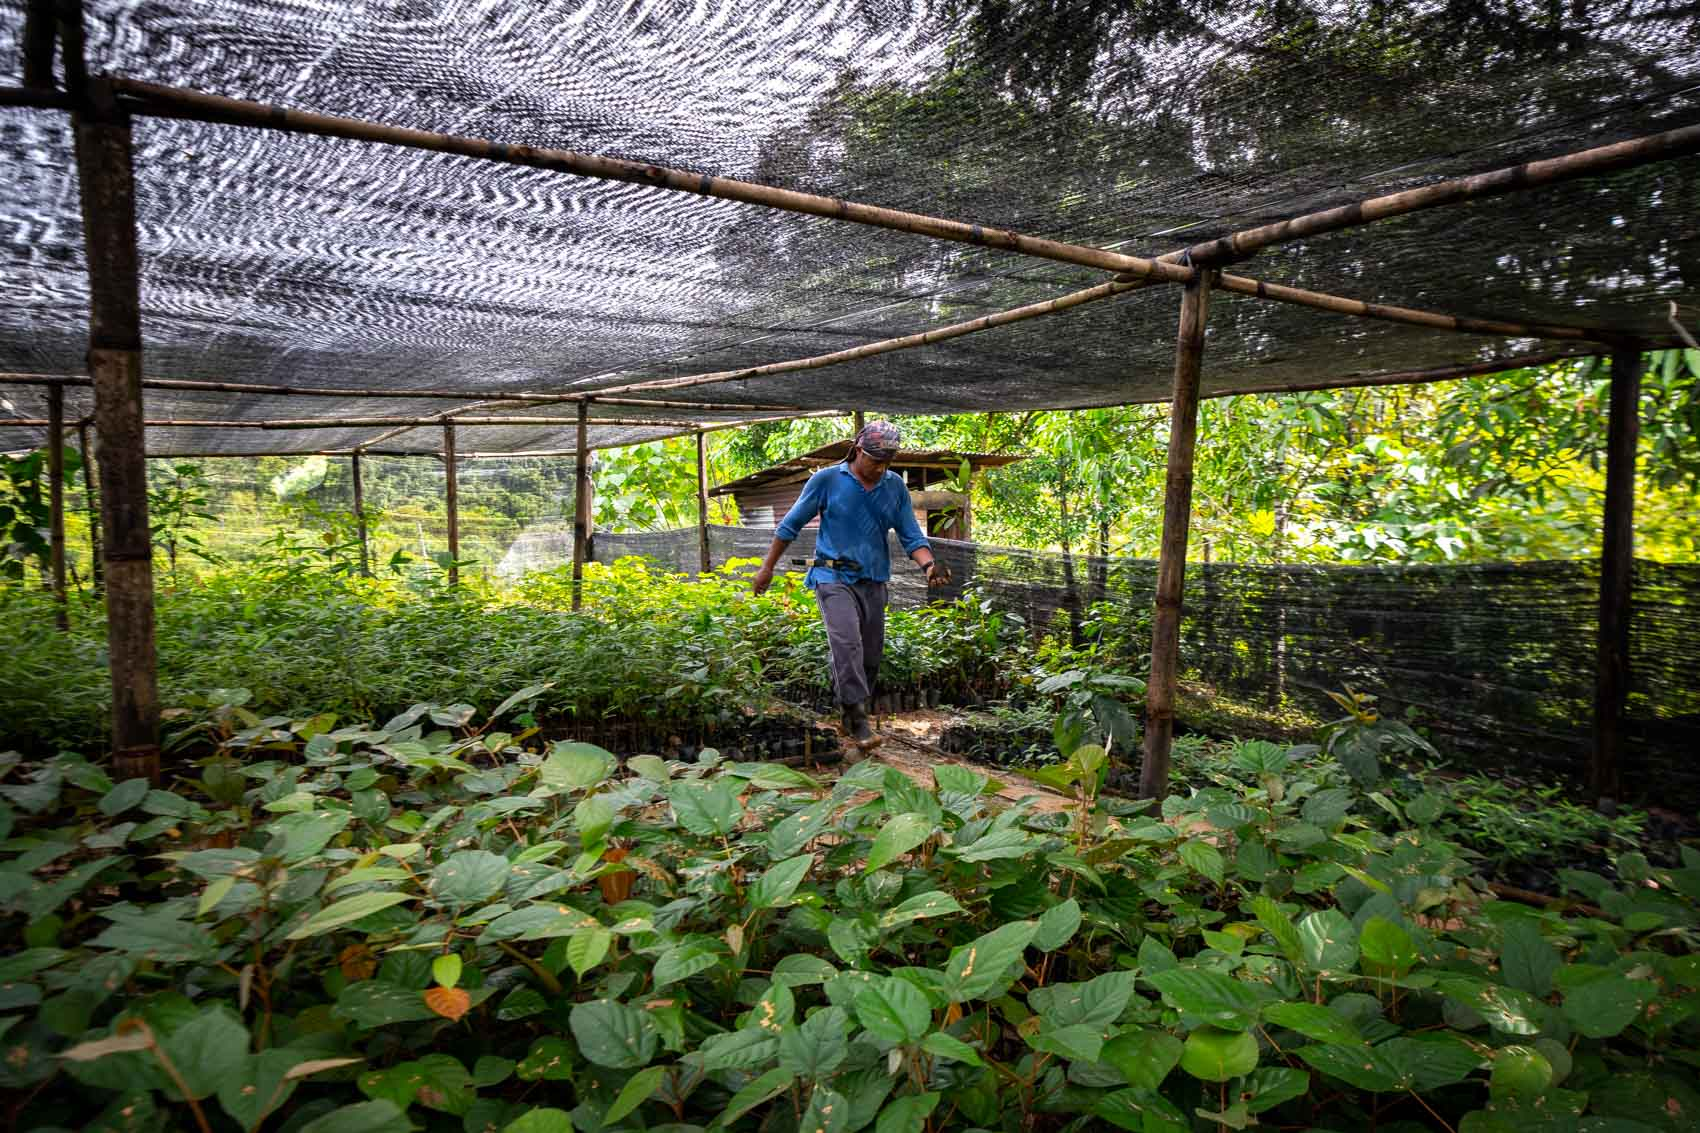 A restoration technician walks through a nursery filled with seedlings at the Orangutan Information Centre